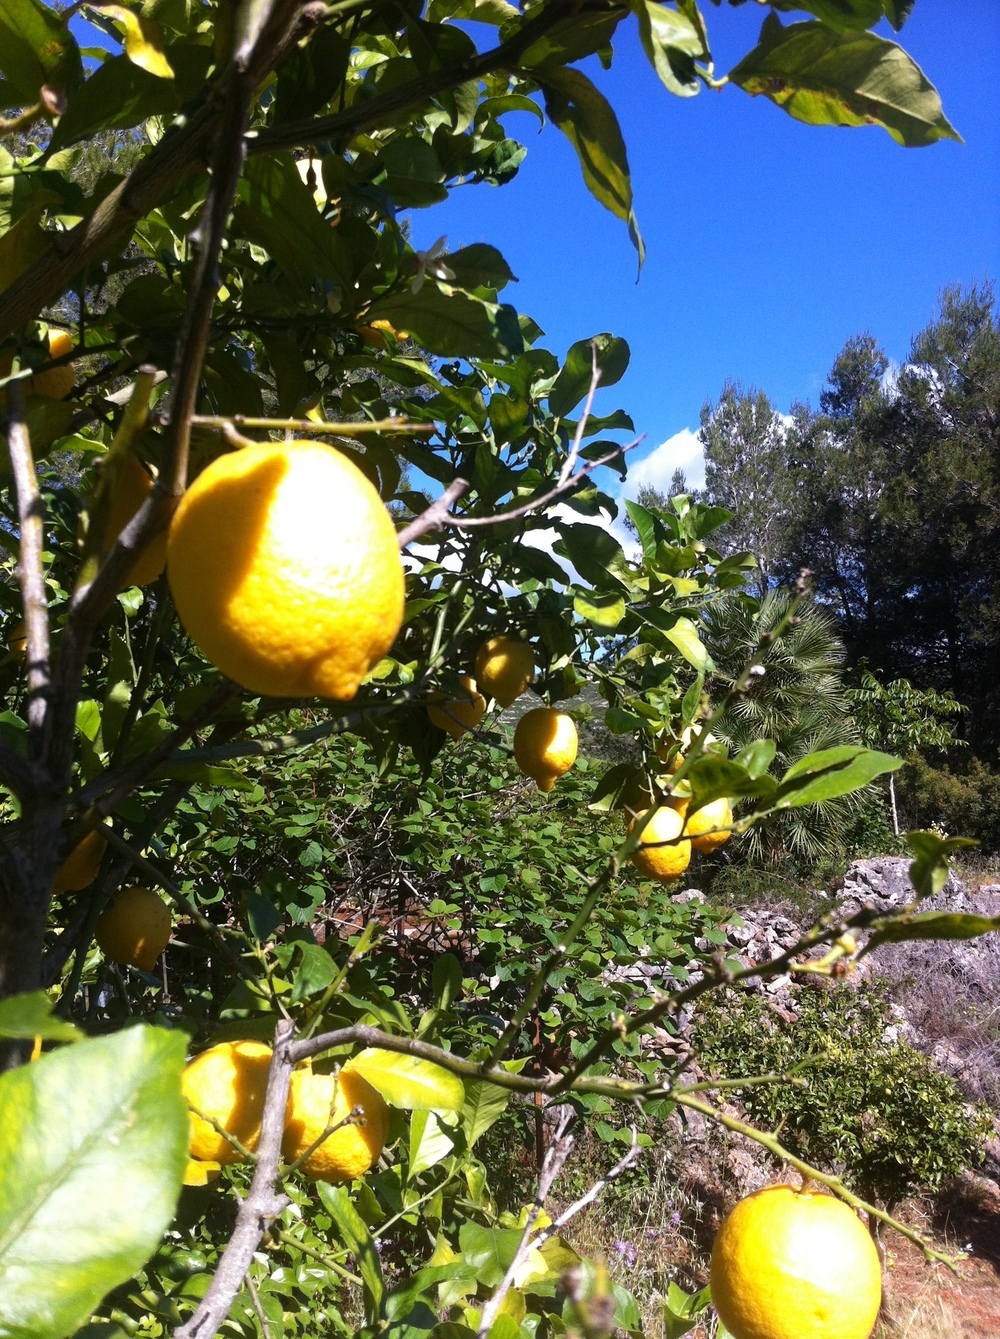 Scrumping for Lemons